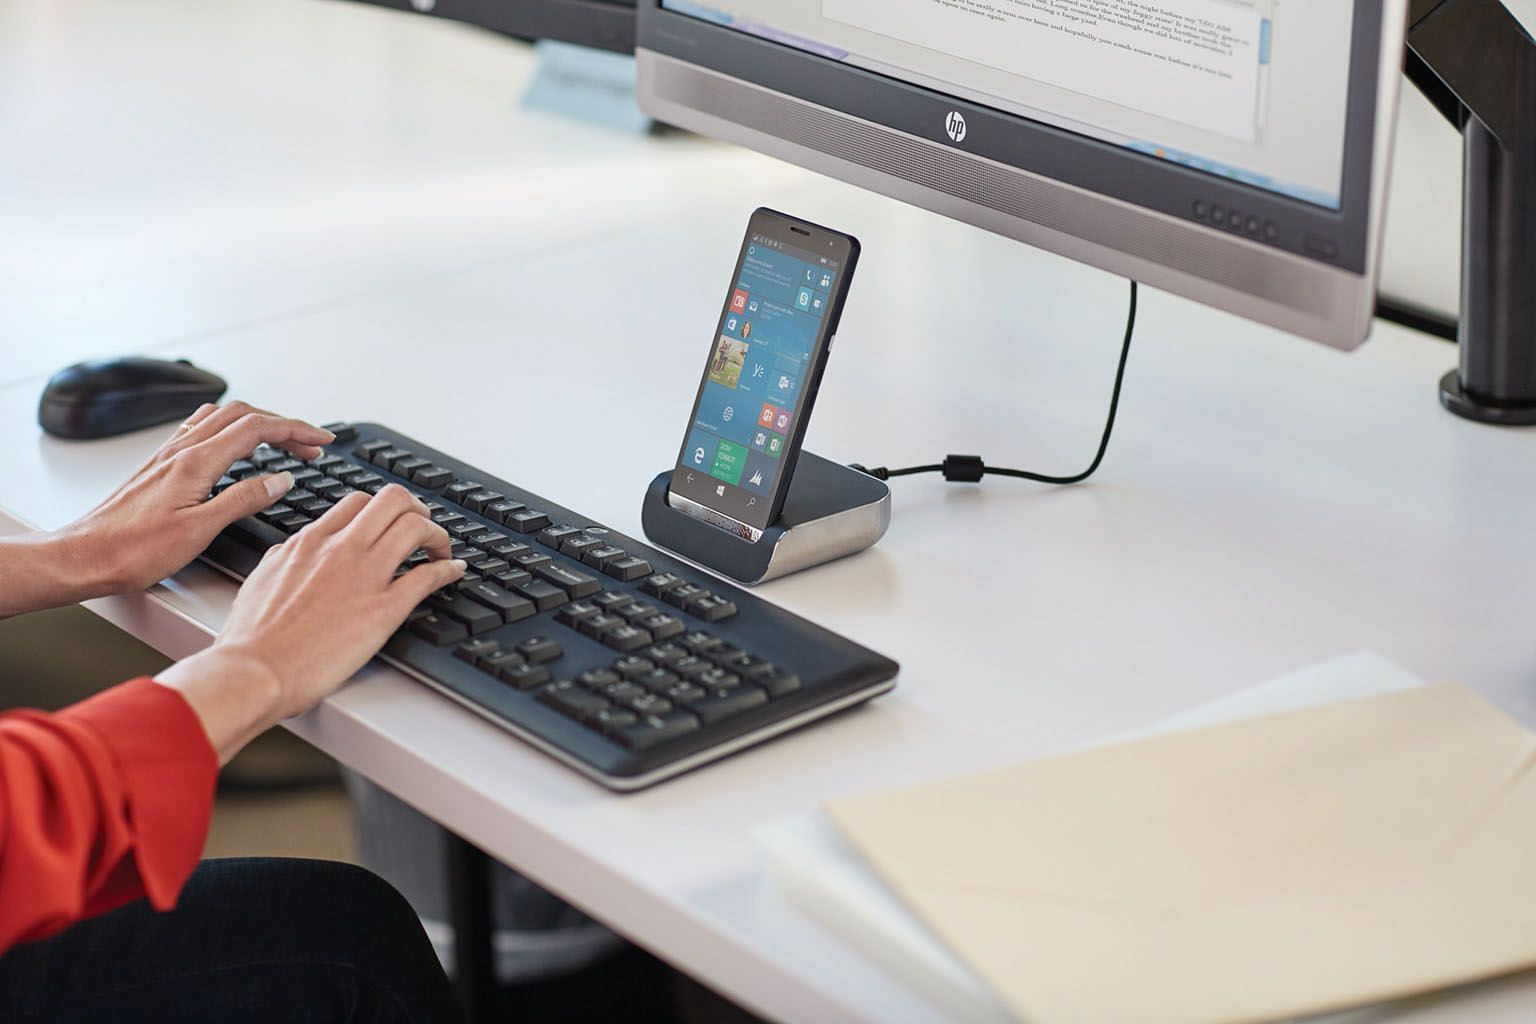 One of the accessories for the Elite x3 is the HP Desk Dock that connects to an external monitor and has additional USB ports and an Ethernet port.